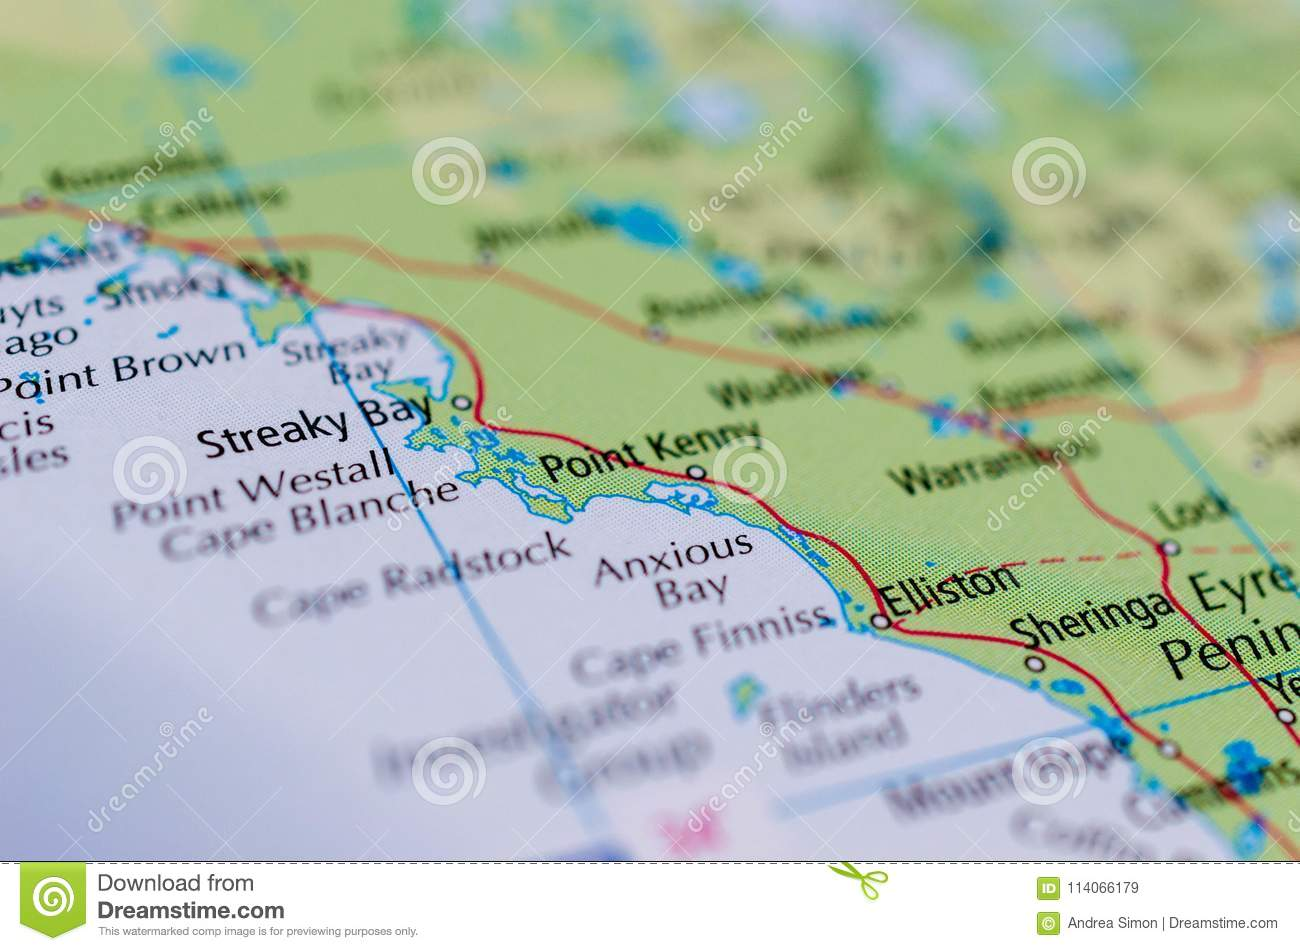 Australia West Coast Map.Anxious Bay On Map Stock Image Image Of Located Paper 114066179